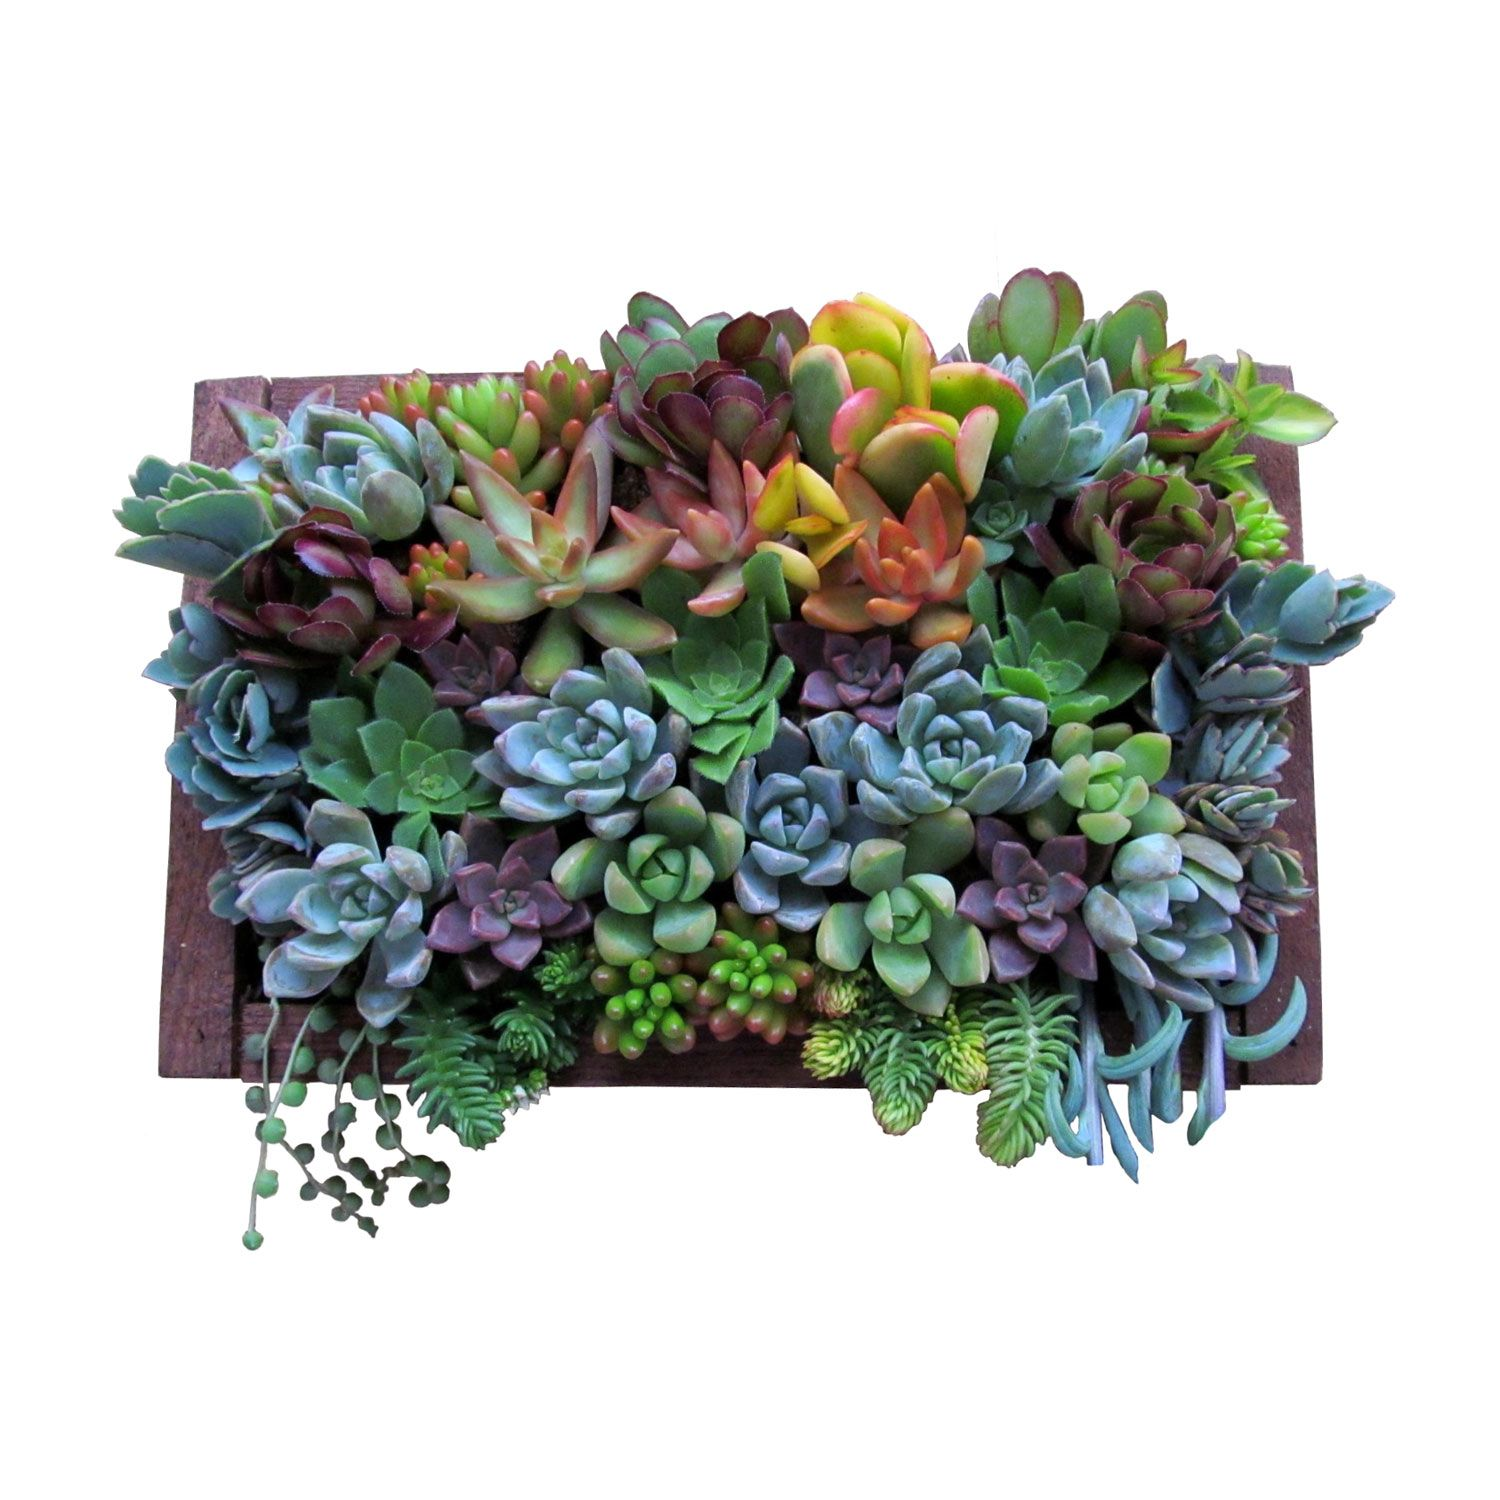 Real Succulent Plants For A Hanging Wall Garden. Gorgeous Colors! Framed  Succulent Art |